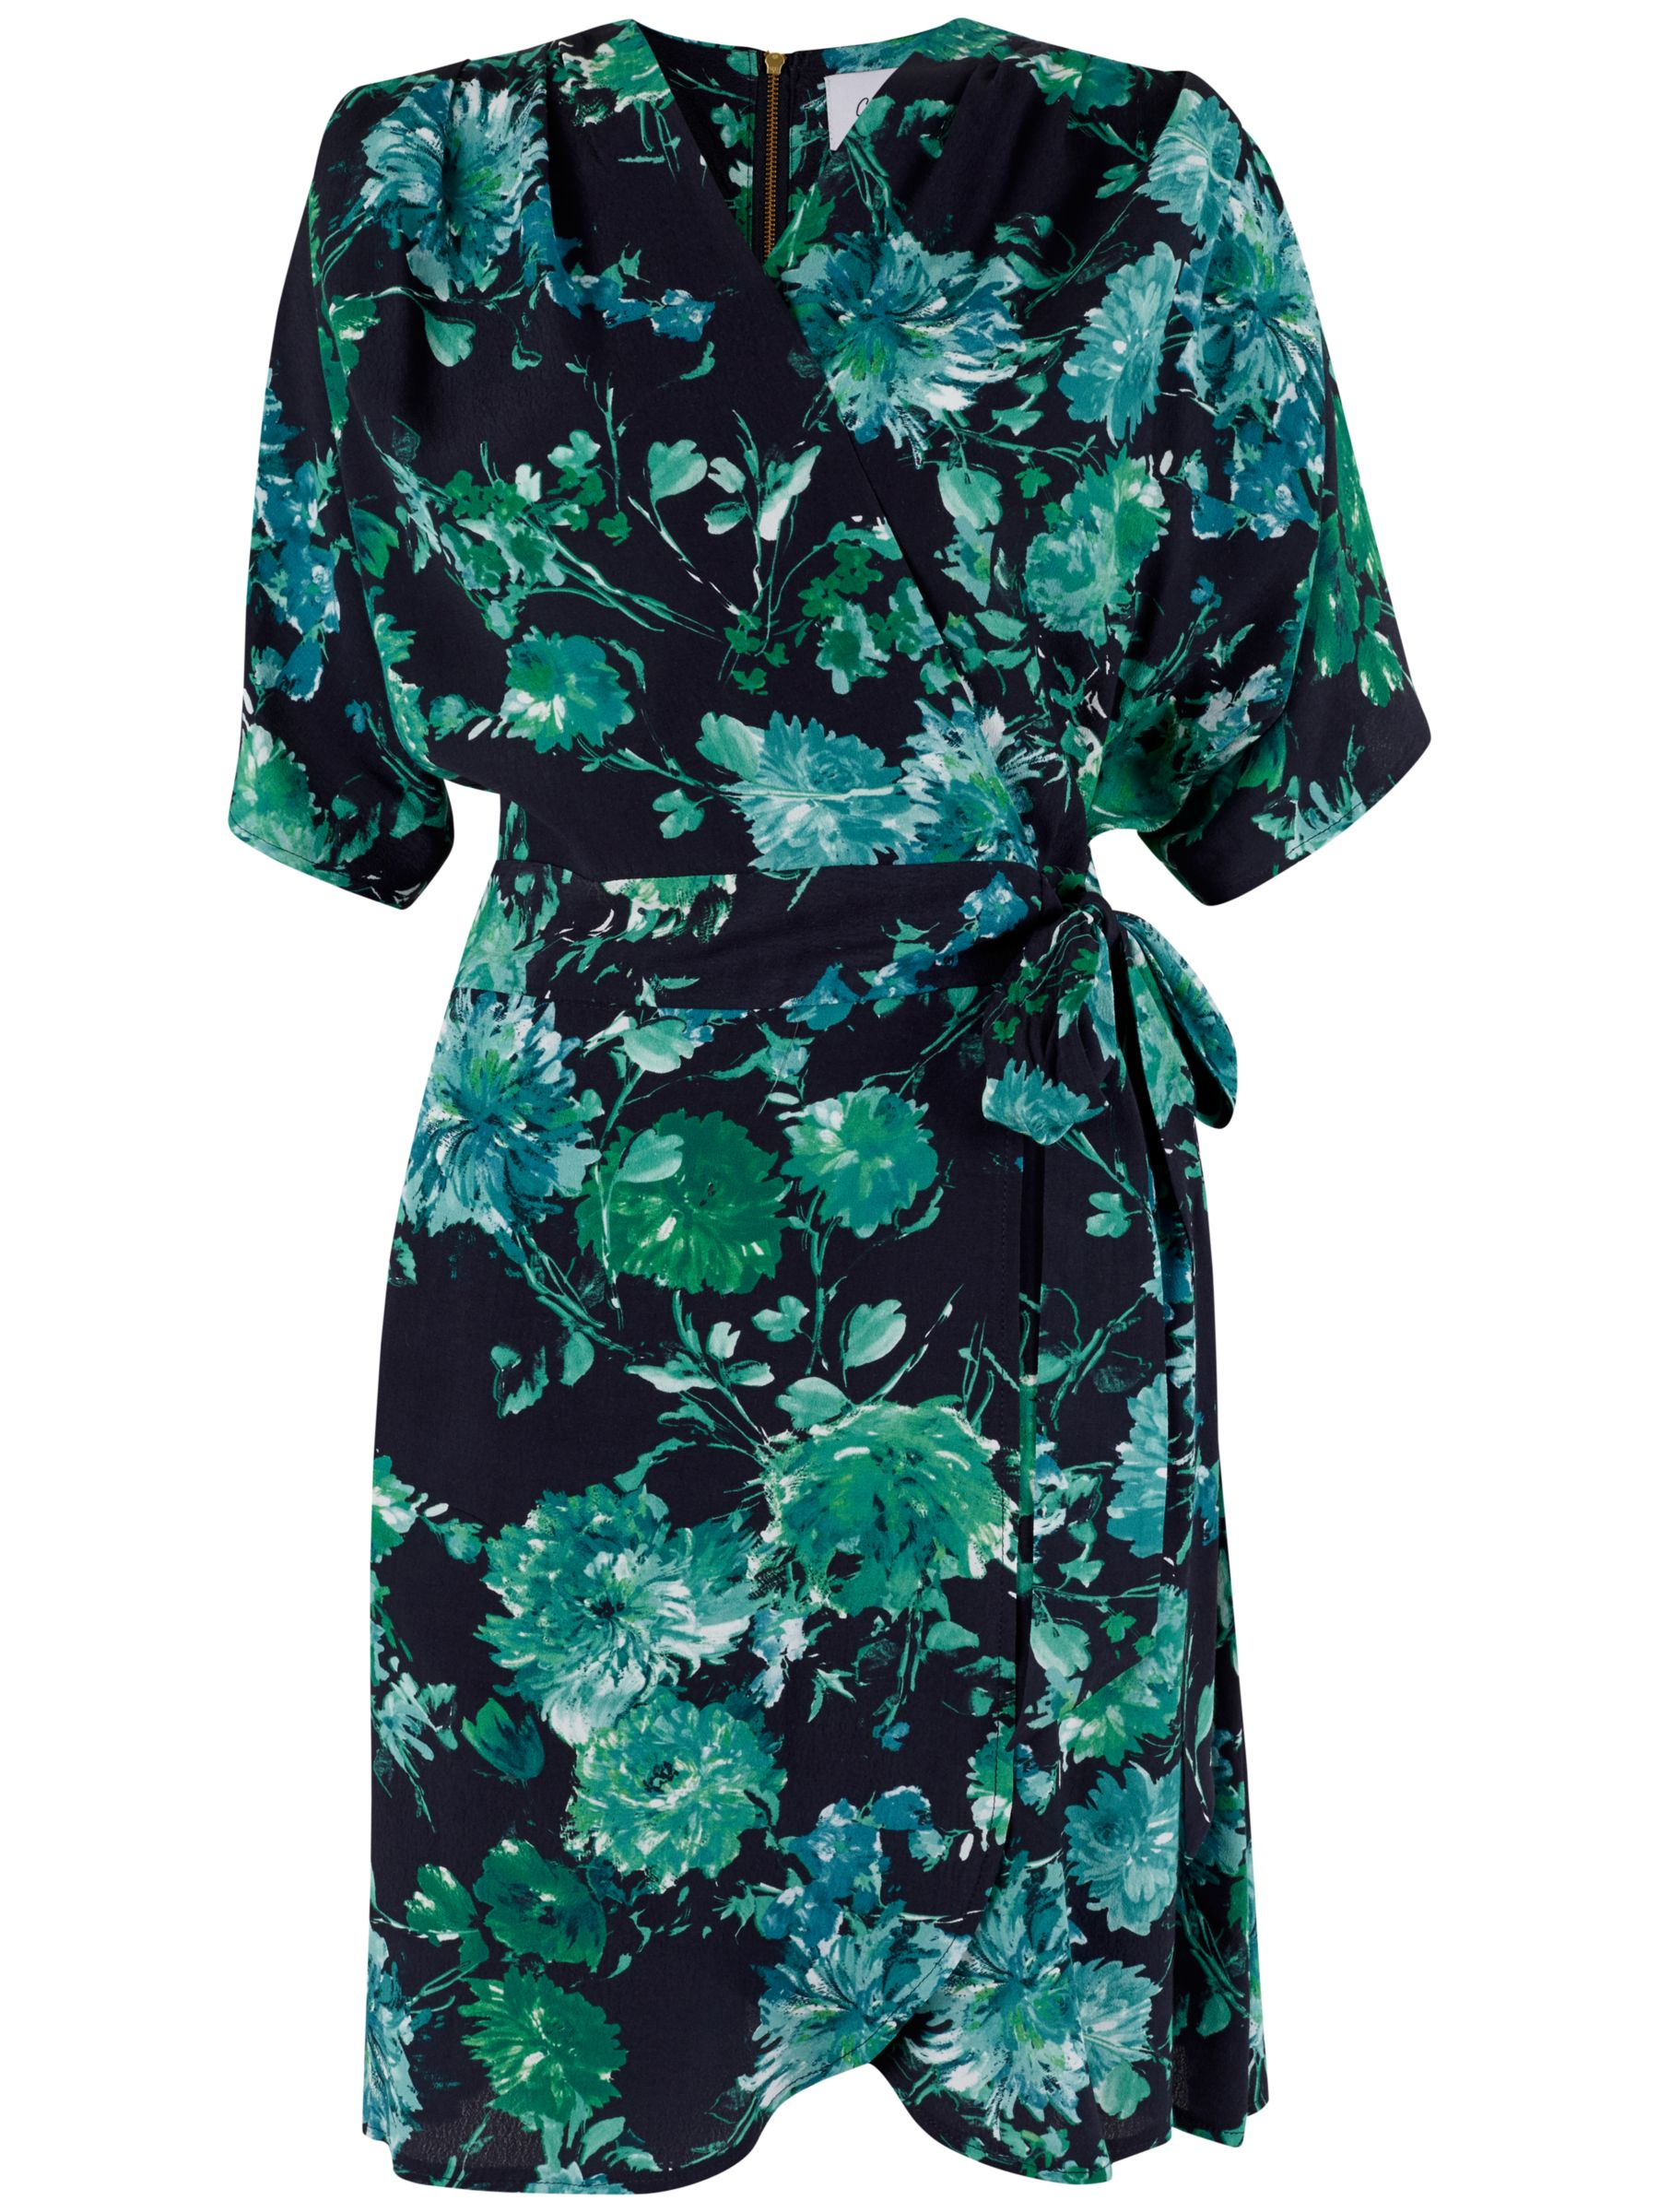 Closet Closet Floral Wrap Dress, Black